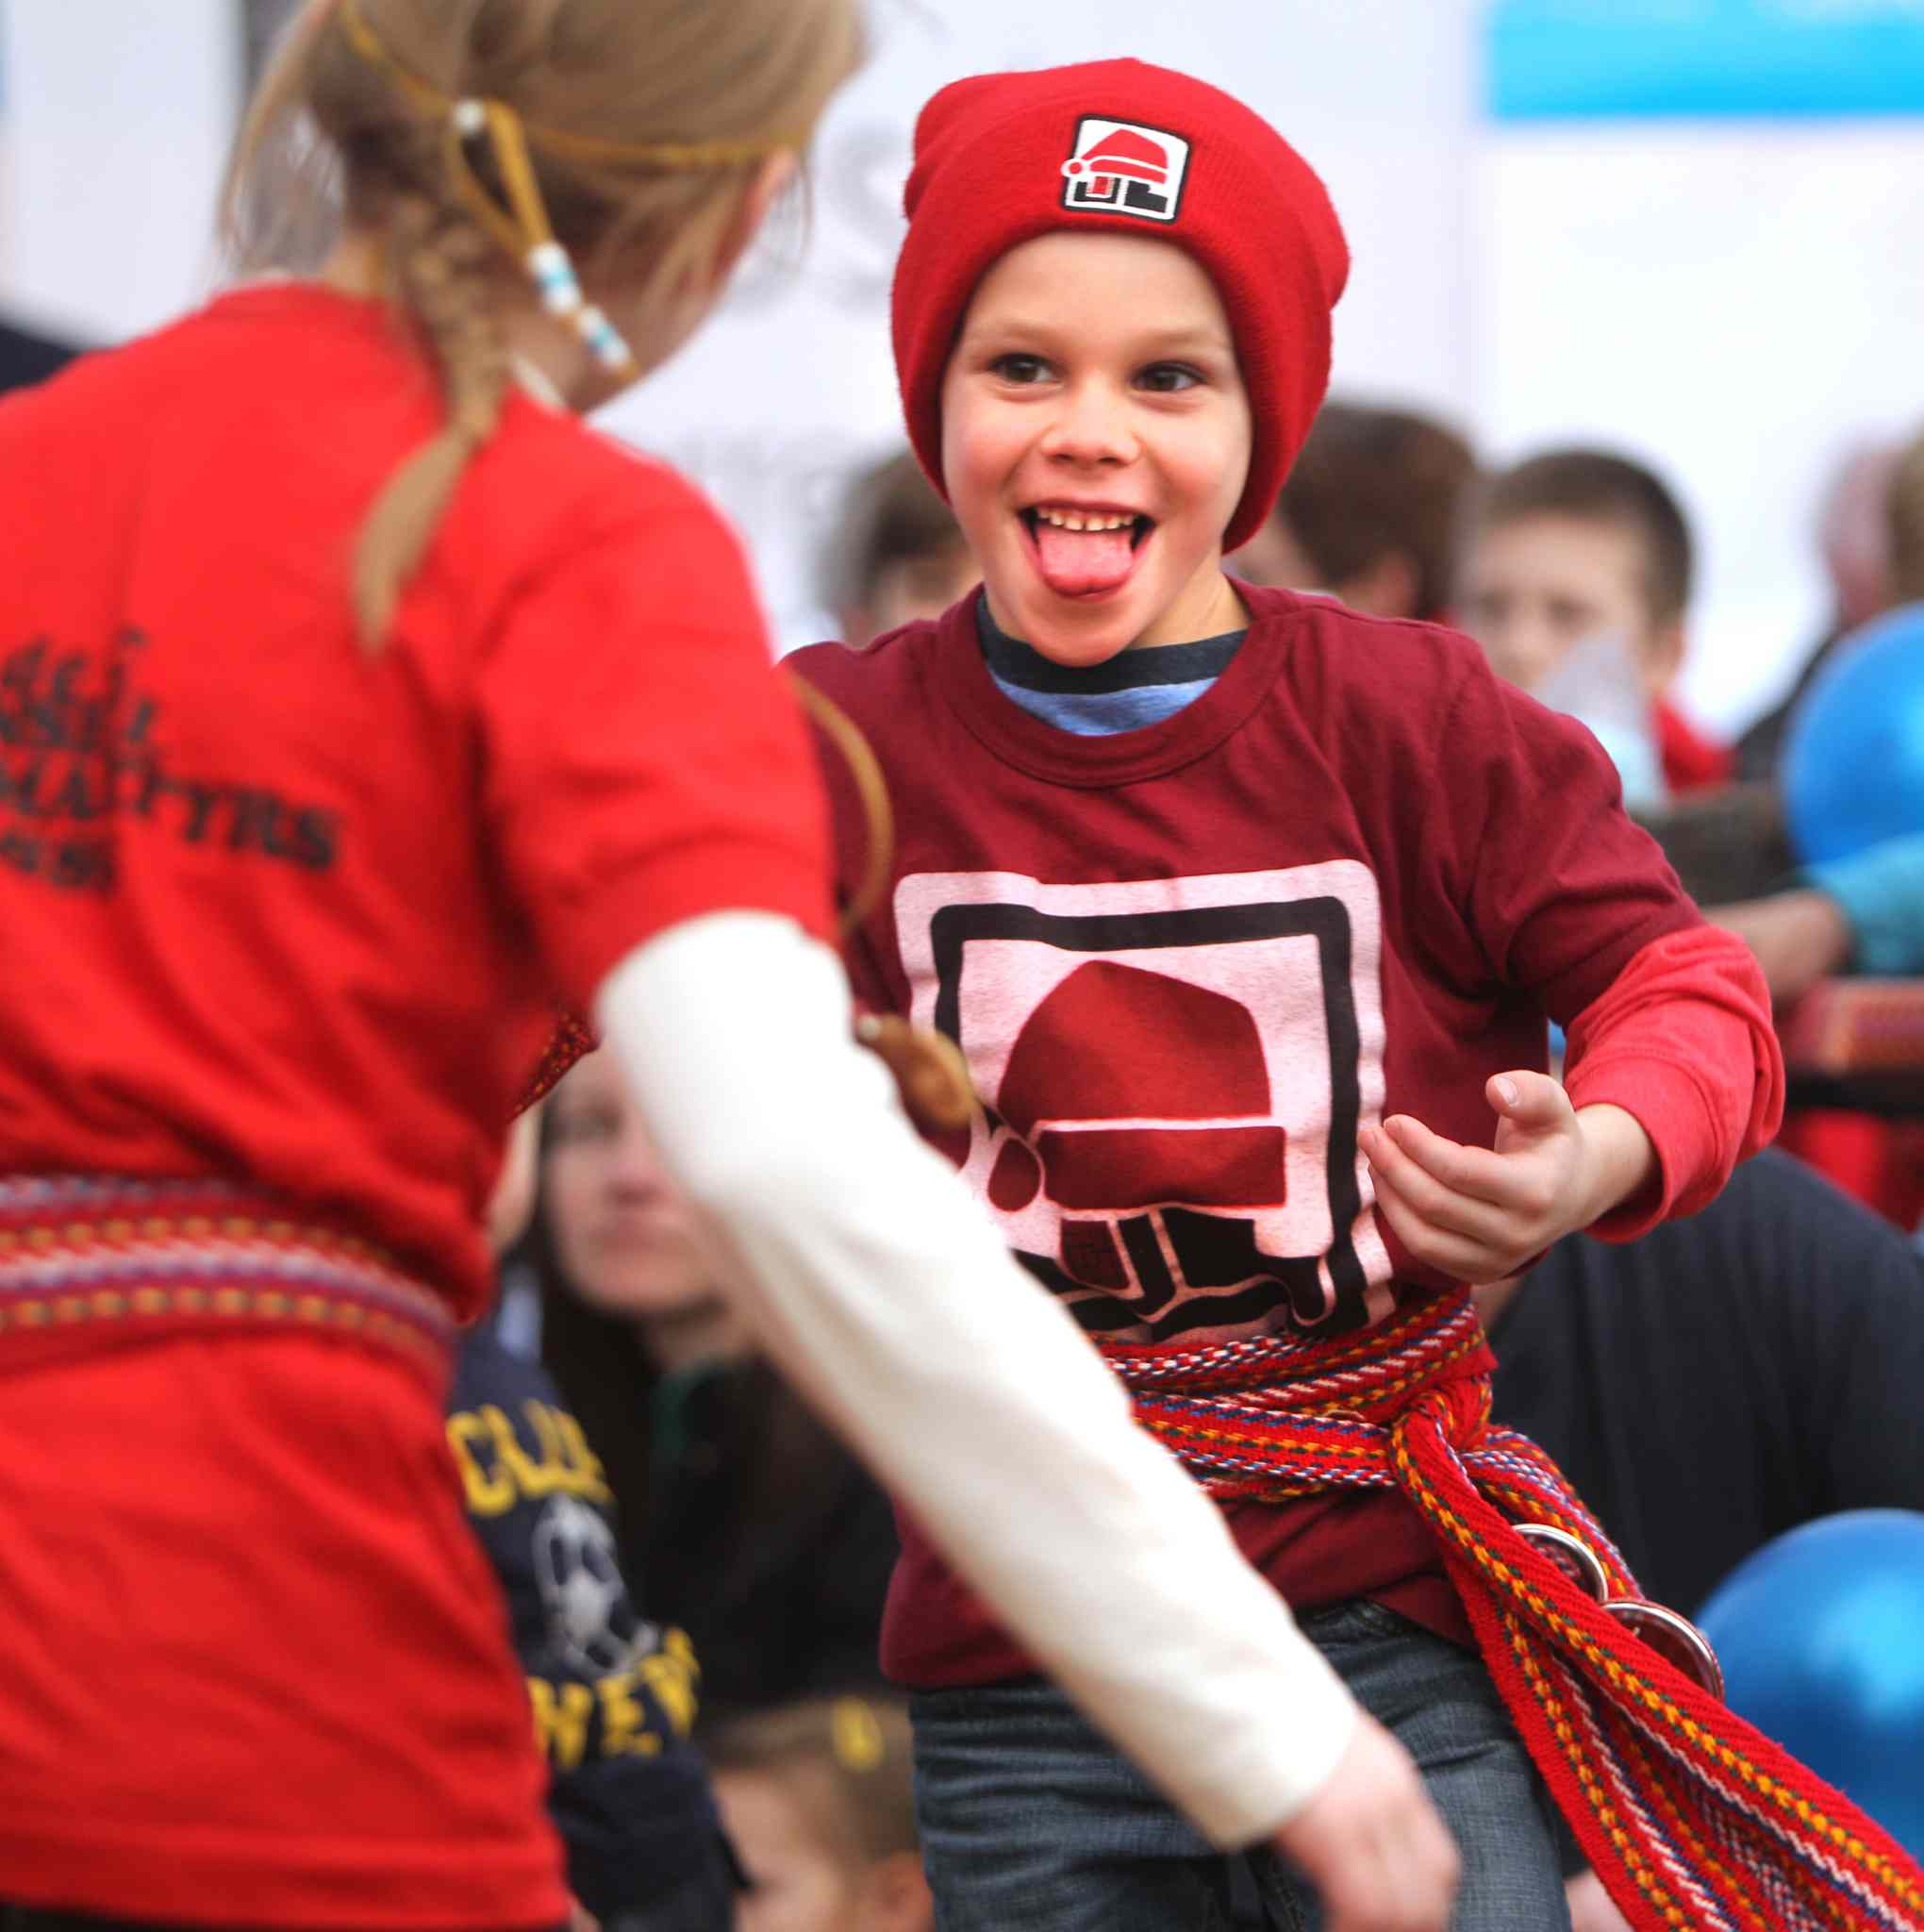 Six year old Caleb Arnaud dances with his sister Katherine to the music of The Bart House Band in the Sugar Shack at the 45 annual Festival du Voyageur Saturday afternoon.